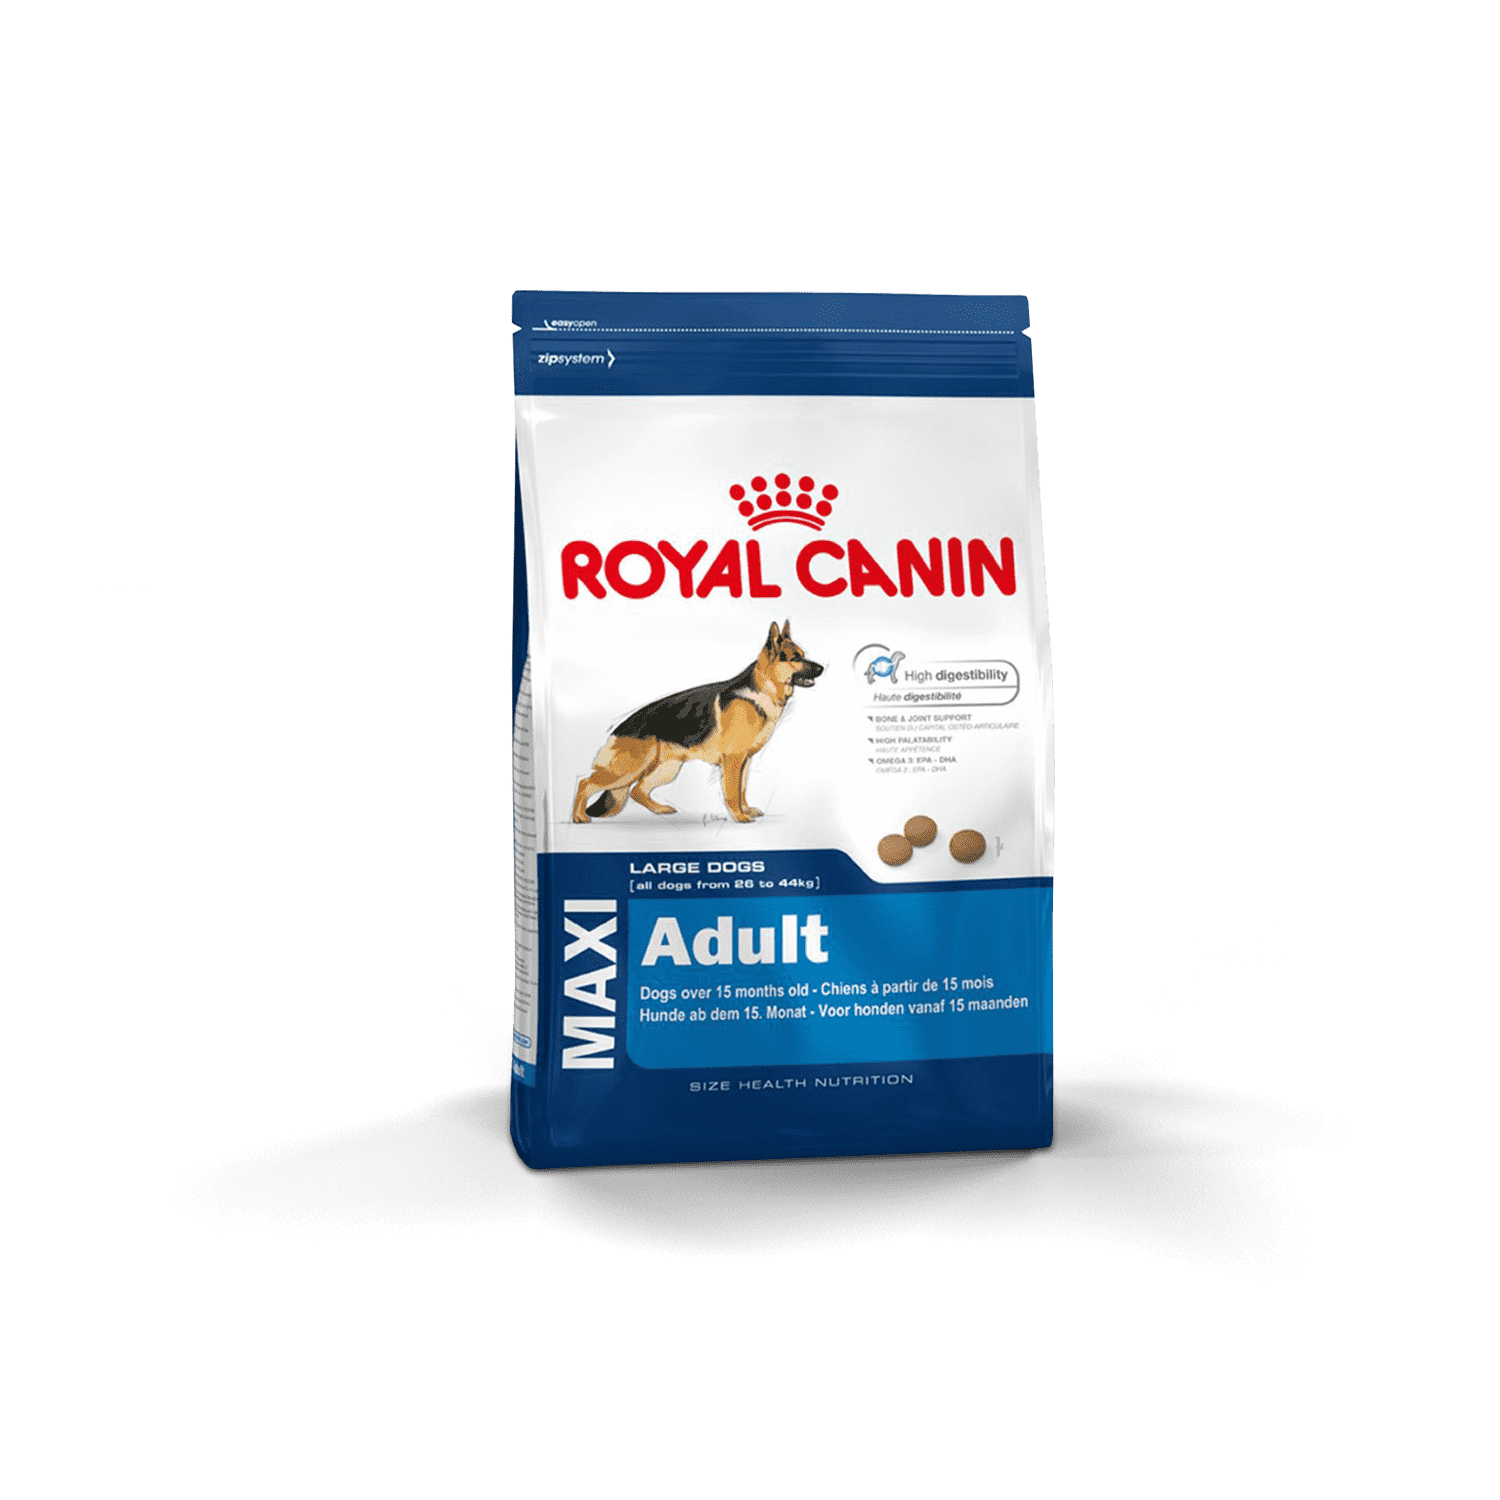 Royal Canin Maxi Adult 15Kg - Clínica Veterinaria Chicureo